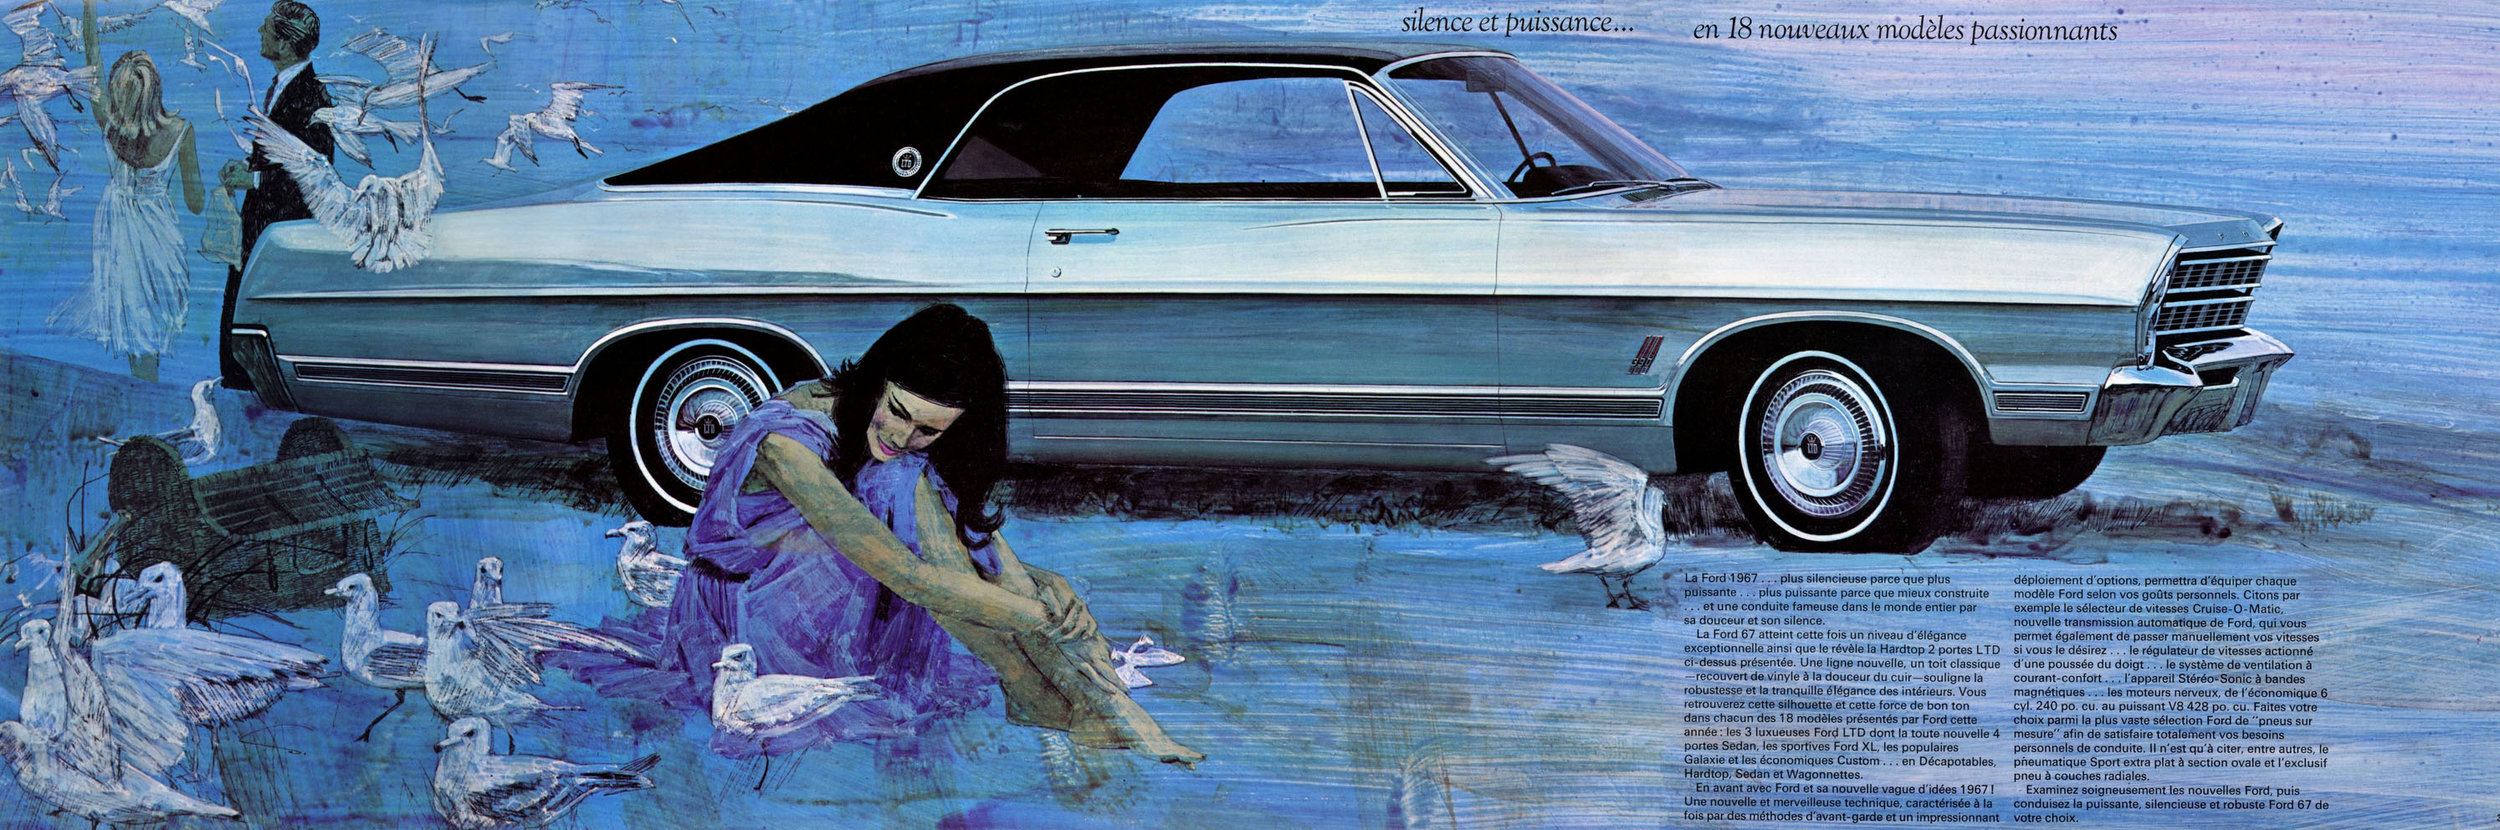 1967 LTD hardtop coupe - French Canadian brochure